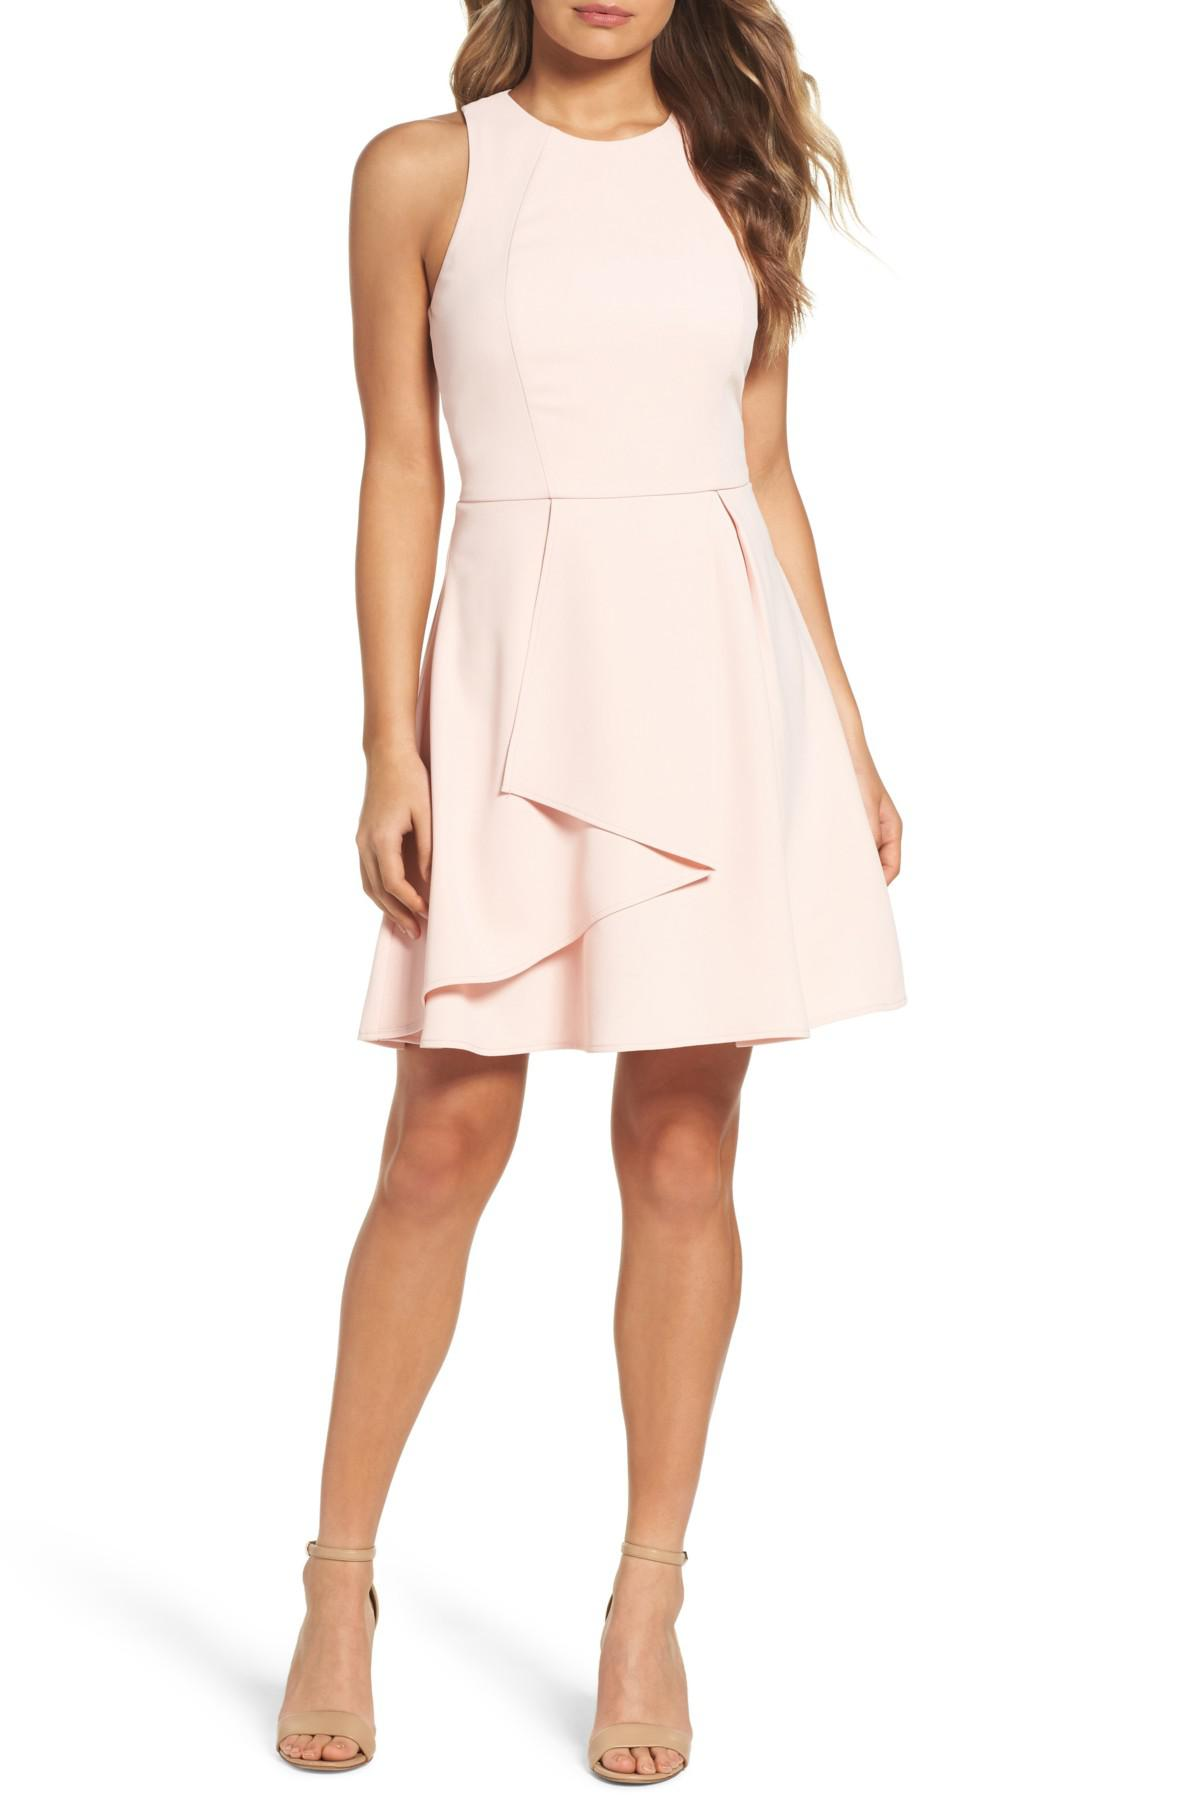 Lyst Adelyn Rae Athena Fit Amp Flare Dress In Pink